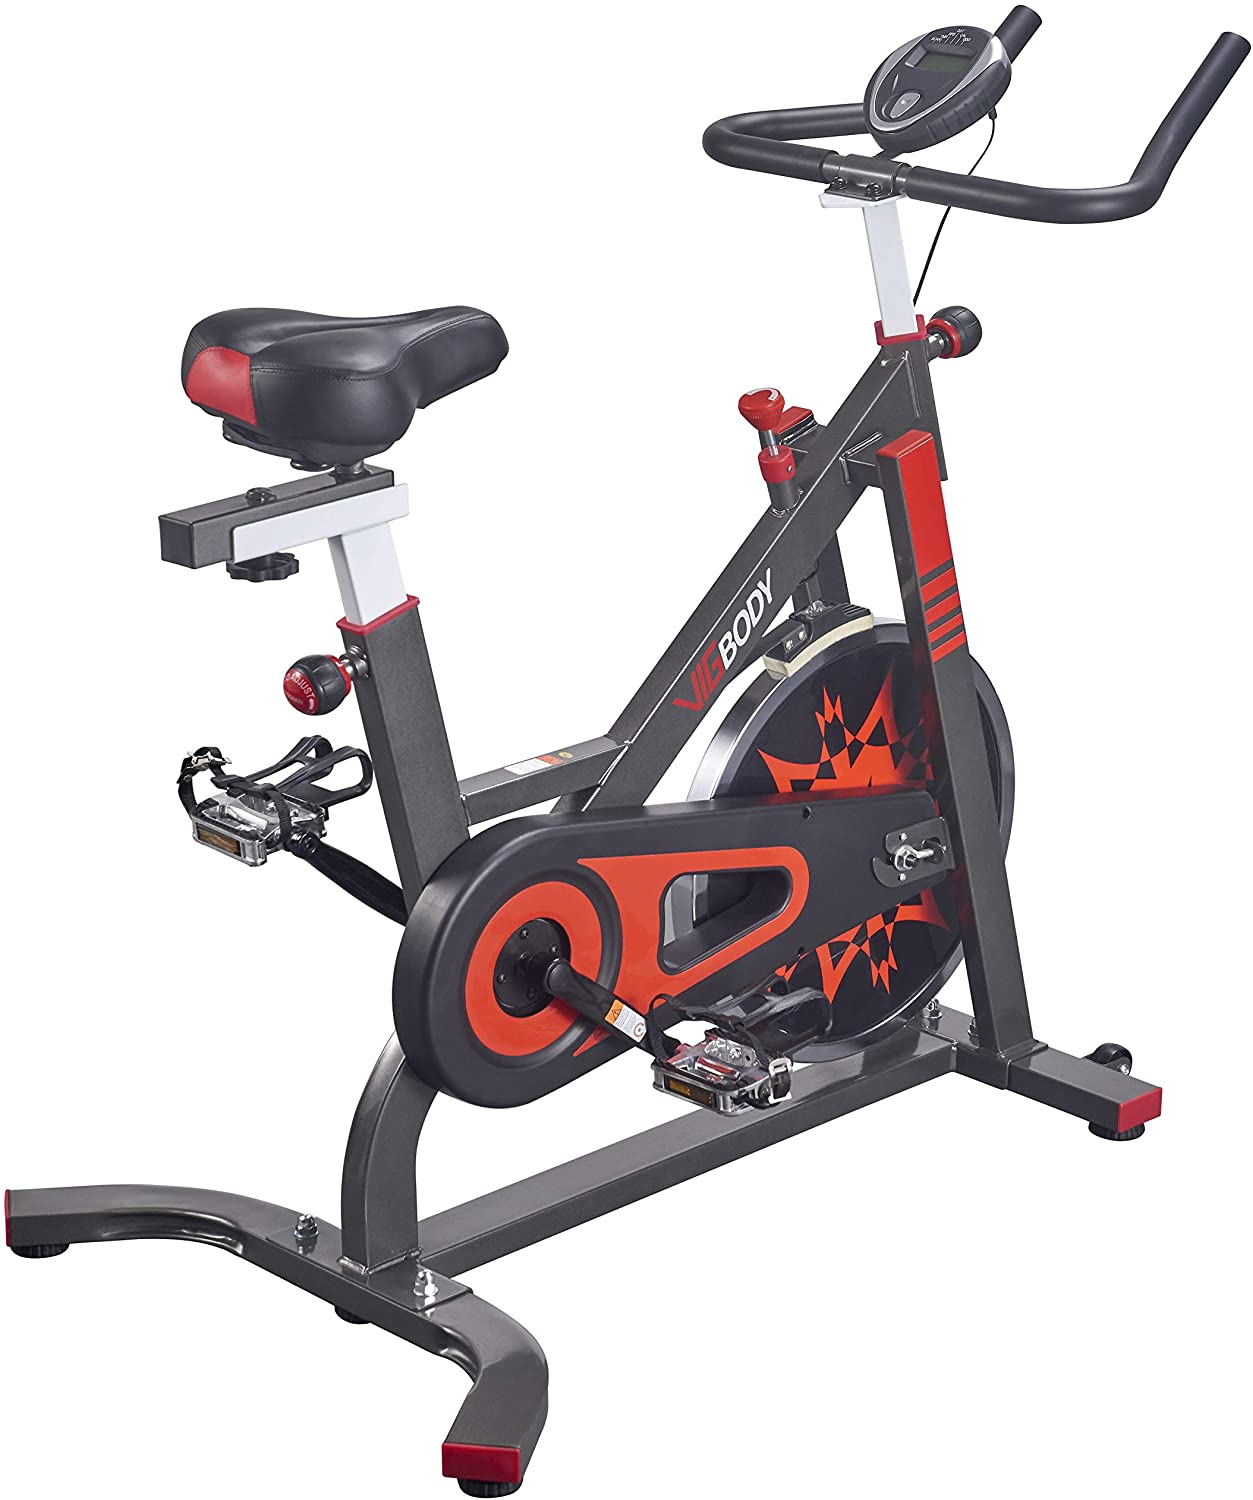 VIGBODY Indoor Cycling Exercise Bike